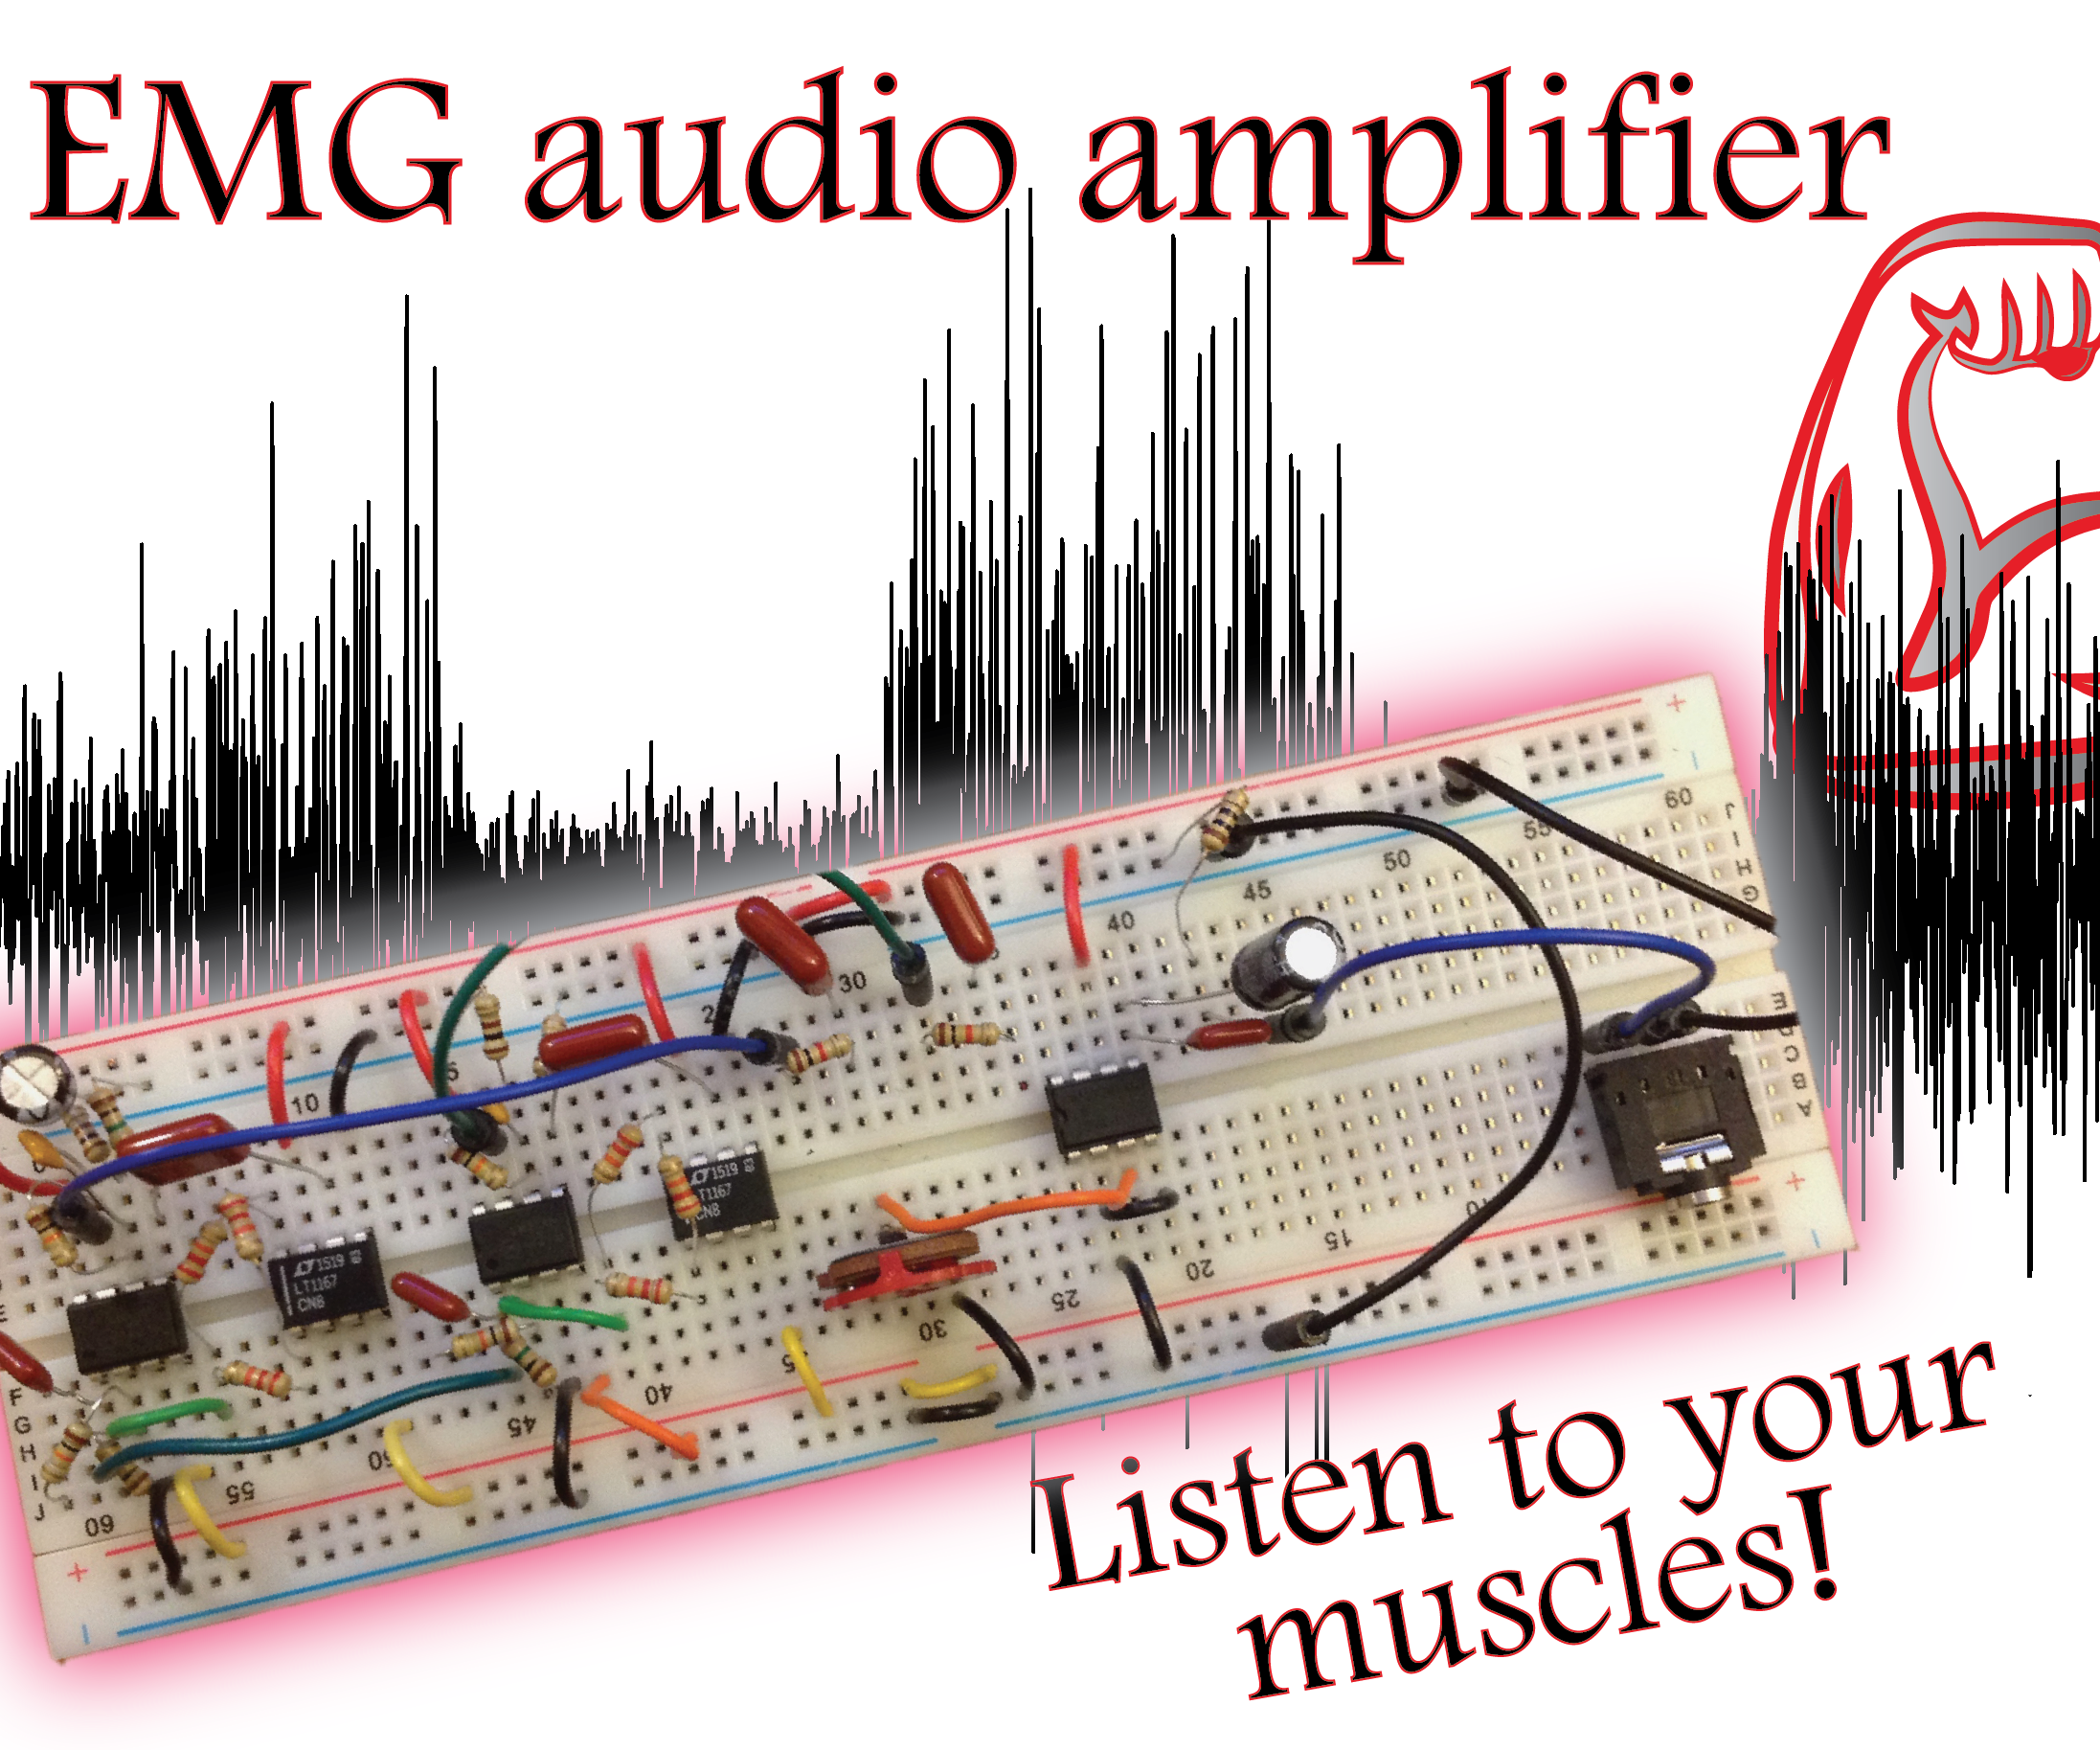 Build a Muscle Audio Amplifier! (Electromyography)